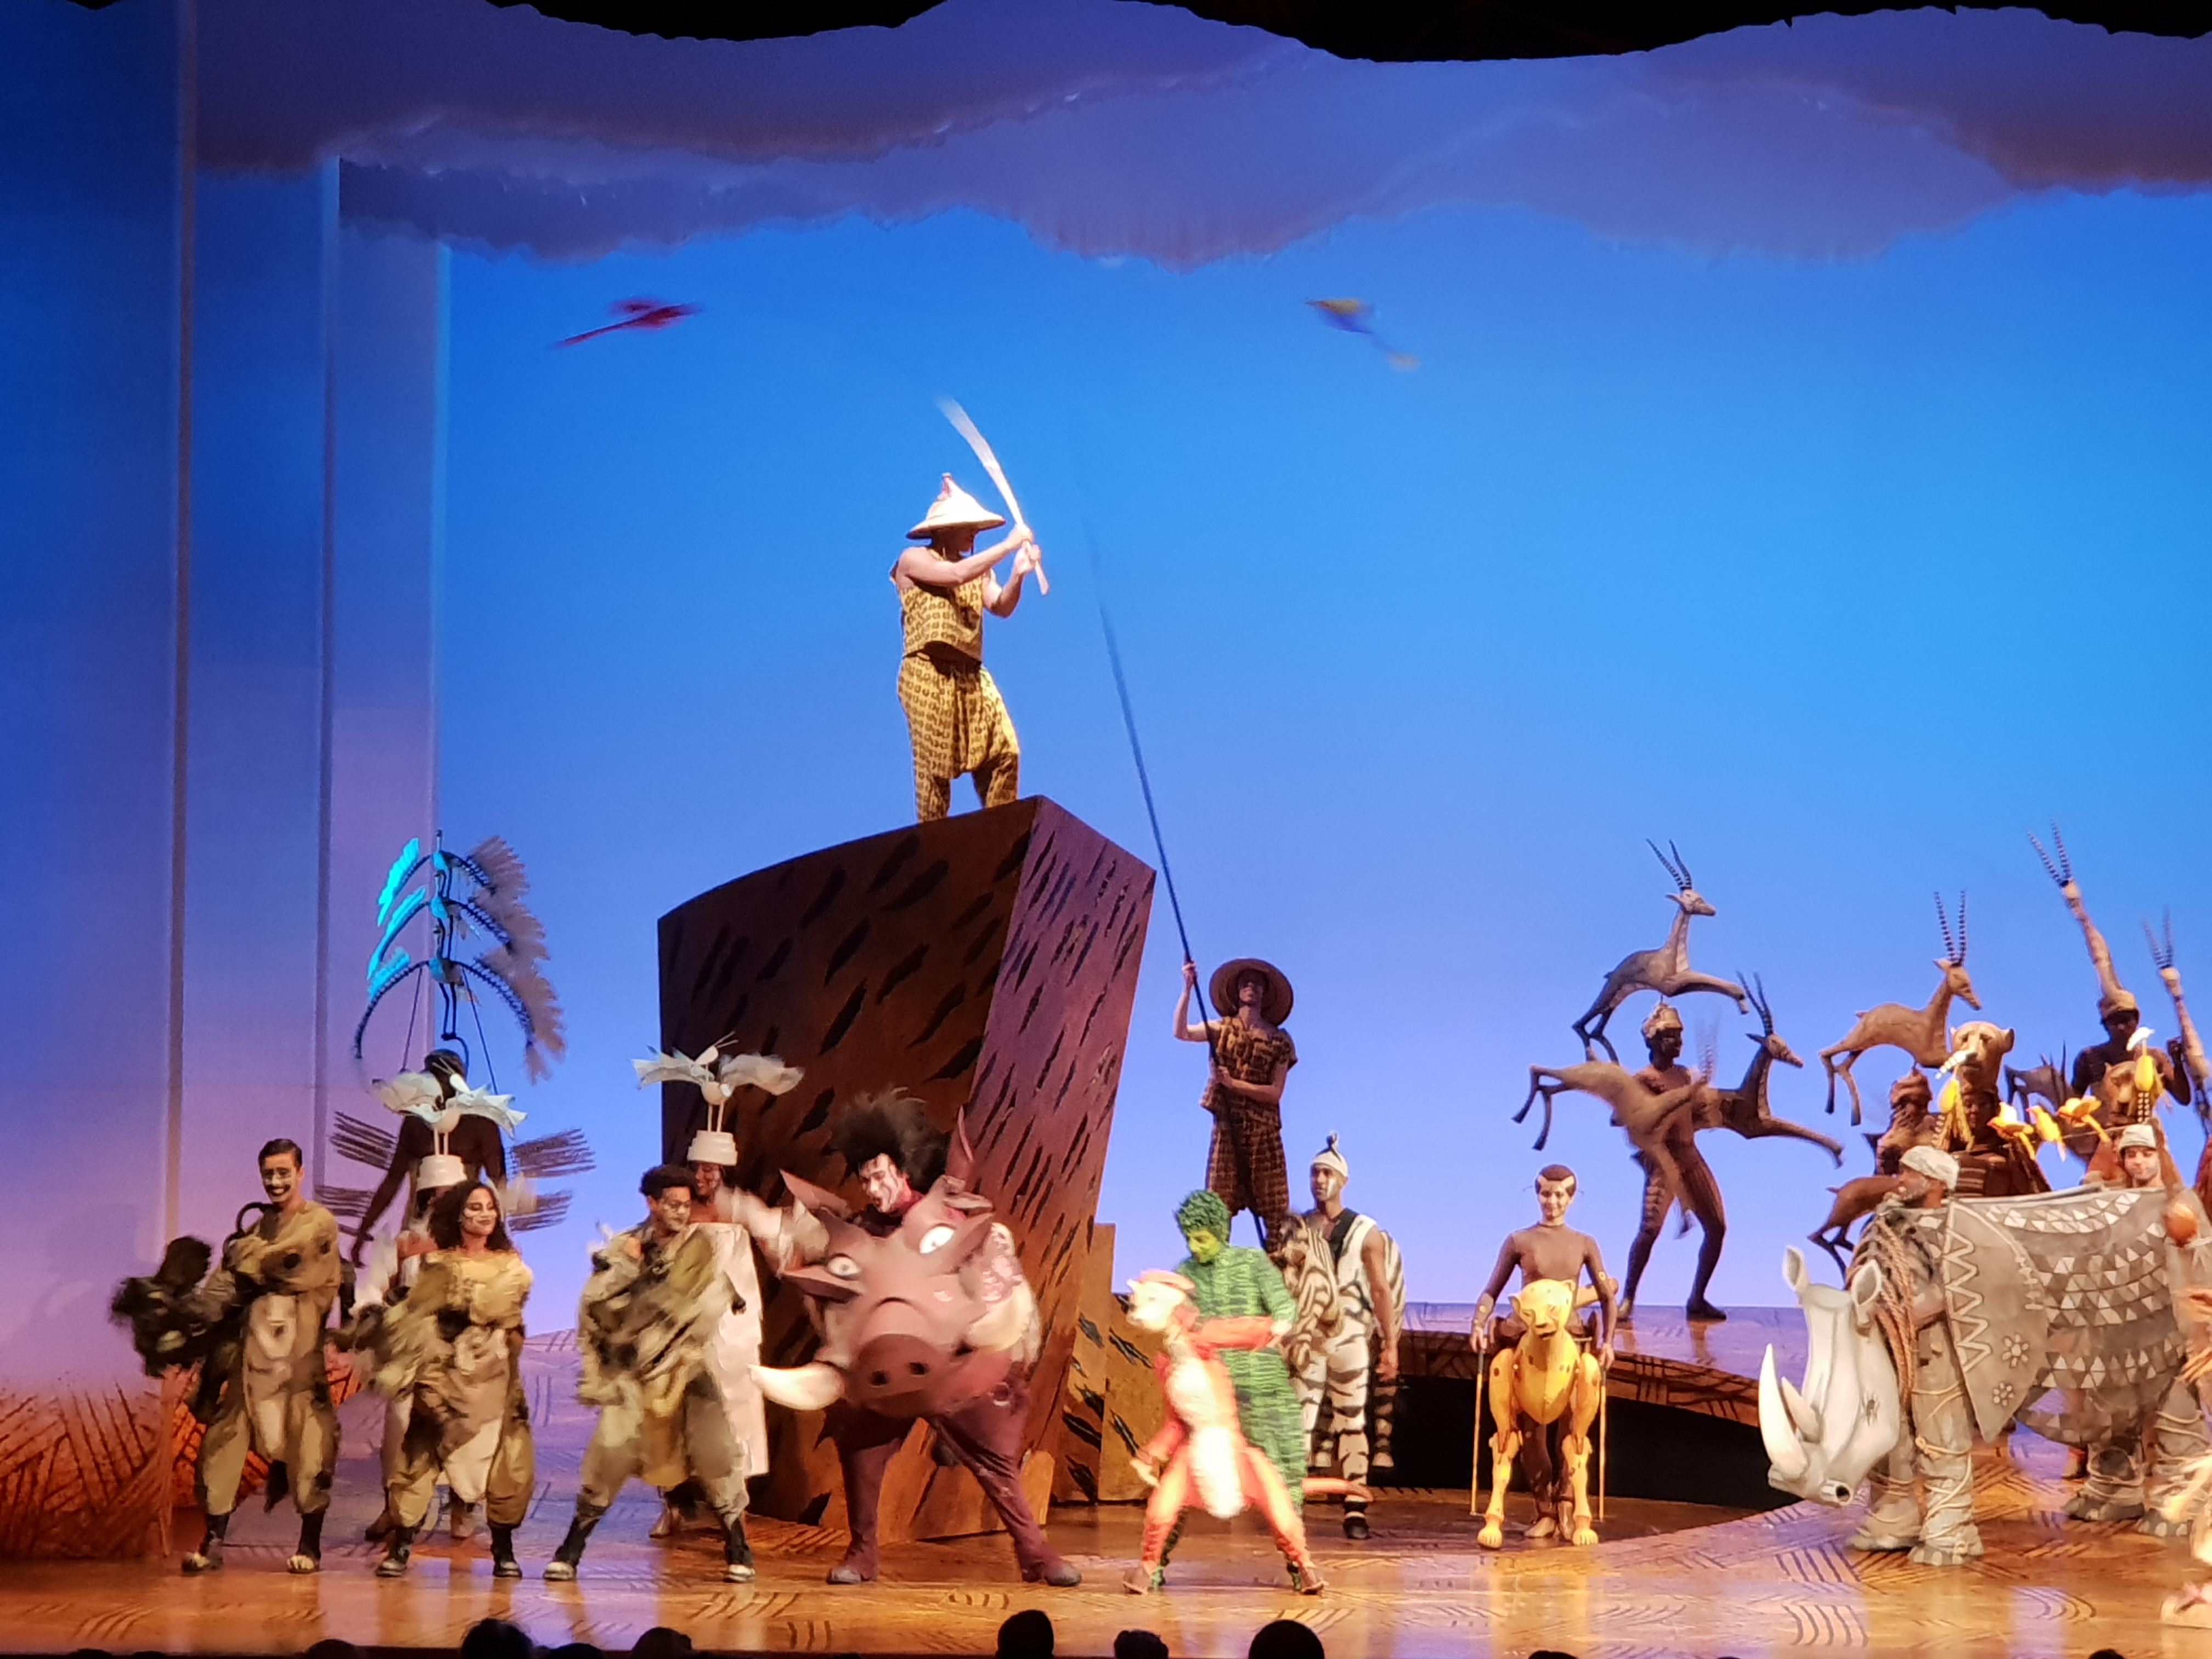 Kostuums Lion King.Musical The Lion King It S A Mom S Worldit S A Mom S World